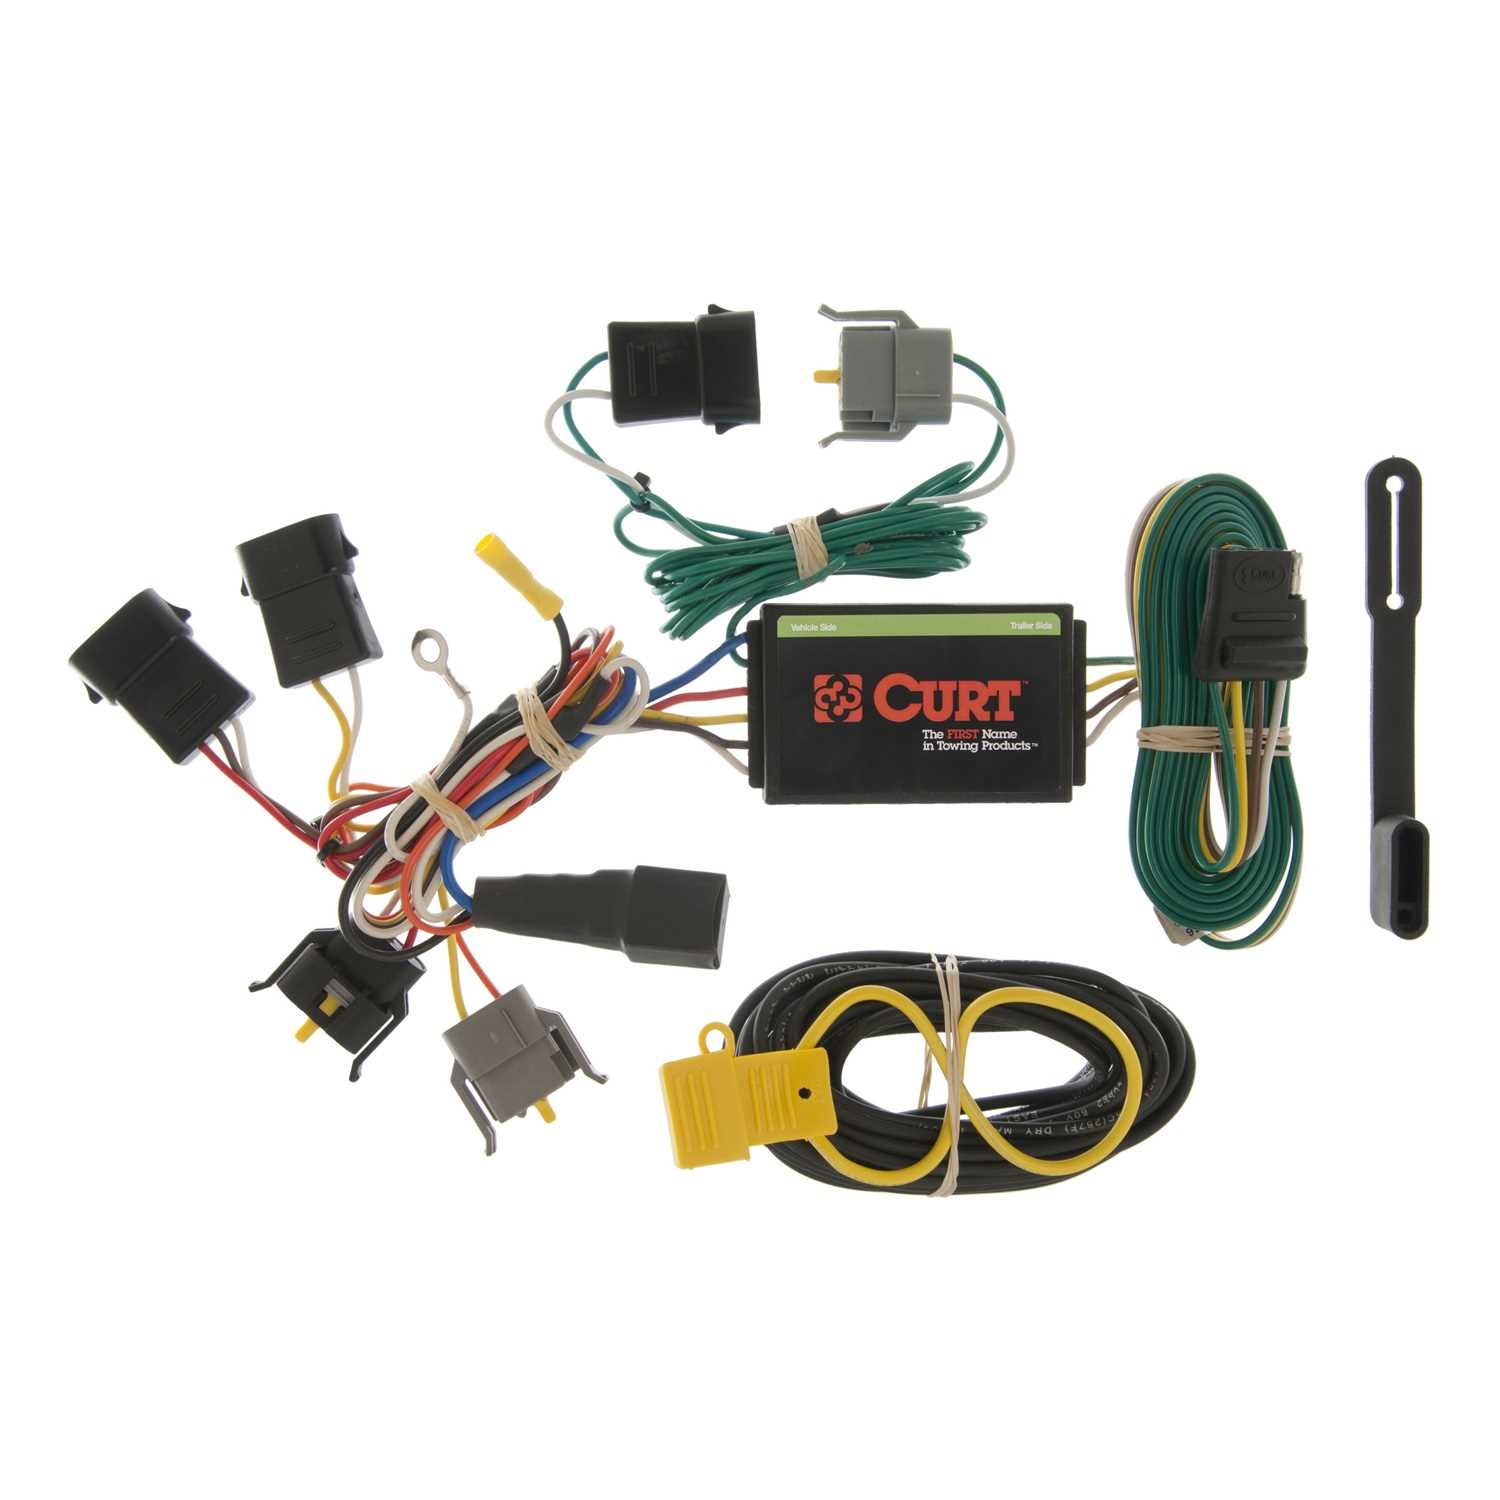 Custom Wiring Harness Johns Trim Shop Curt Tconnector Vehicle For Factory Tow Package 5 55366